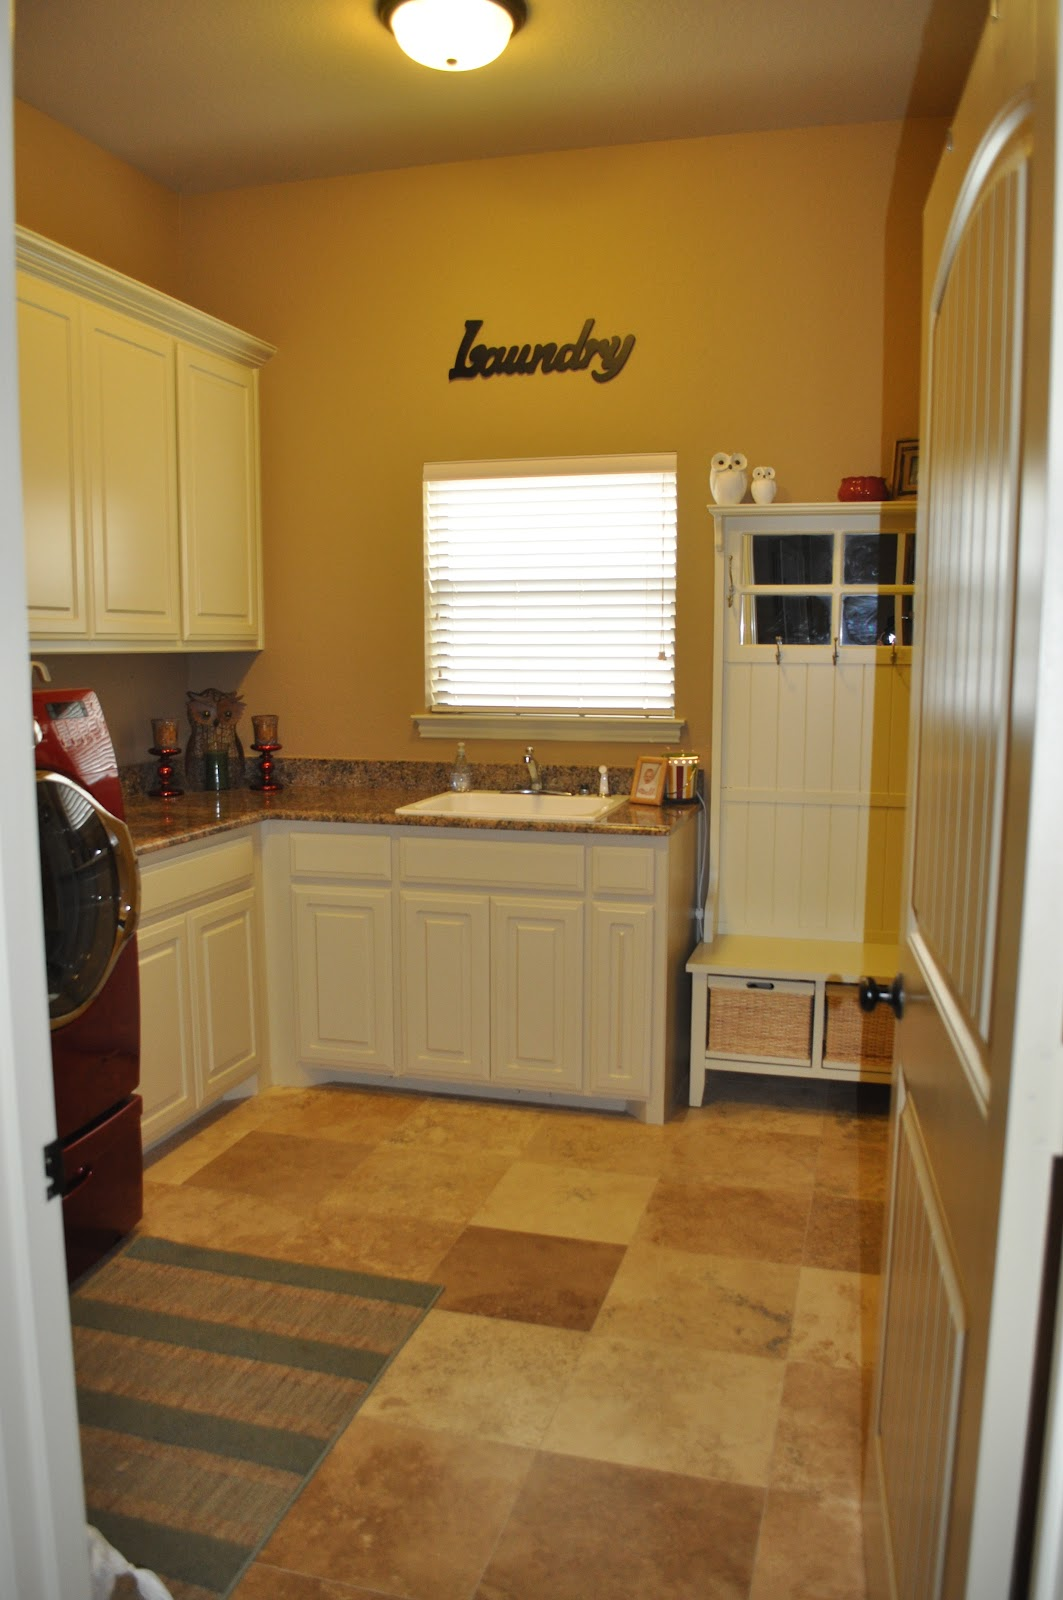 Southern Fried Family: Tour My Laundry room